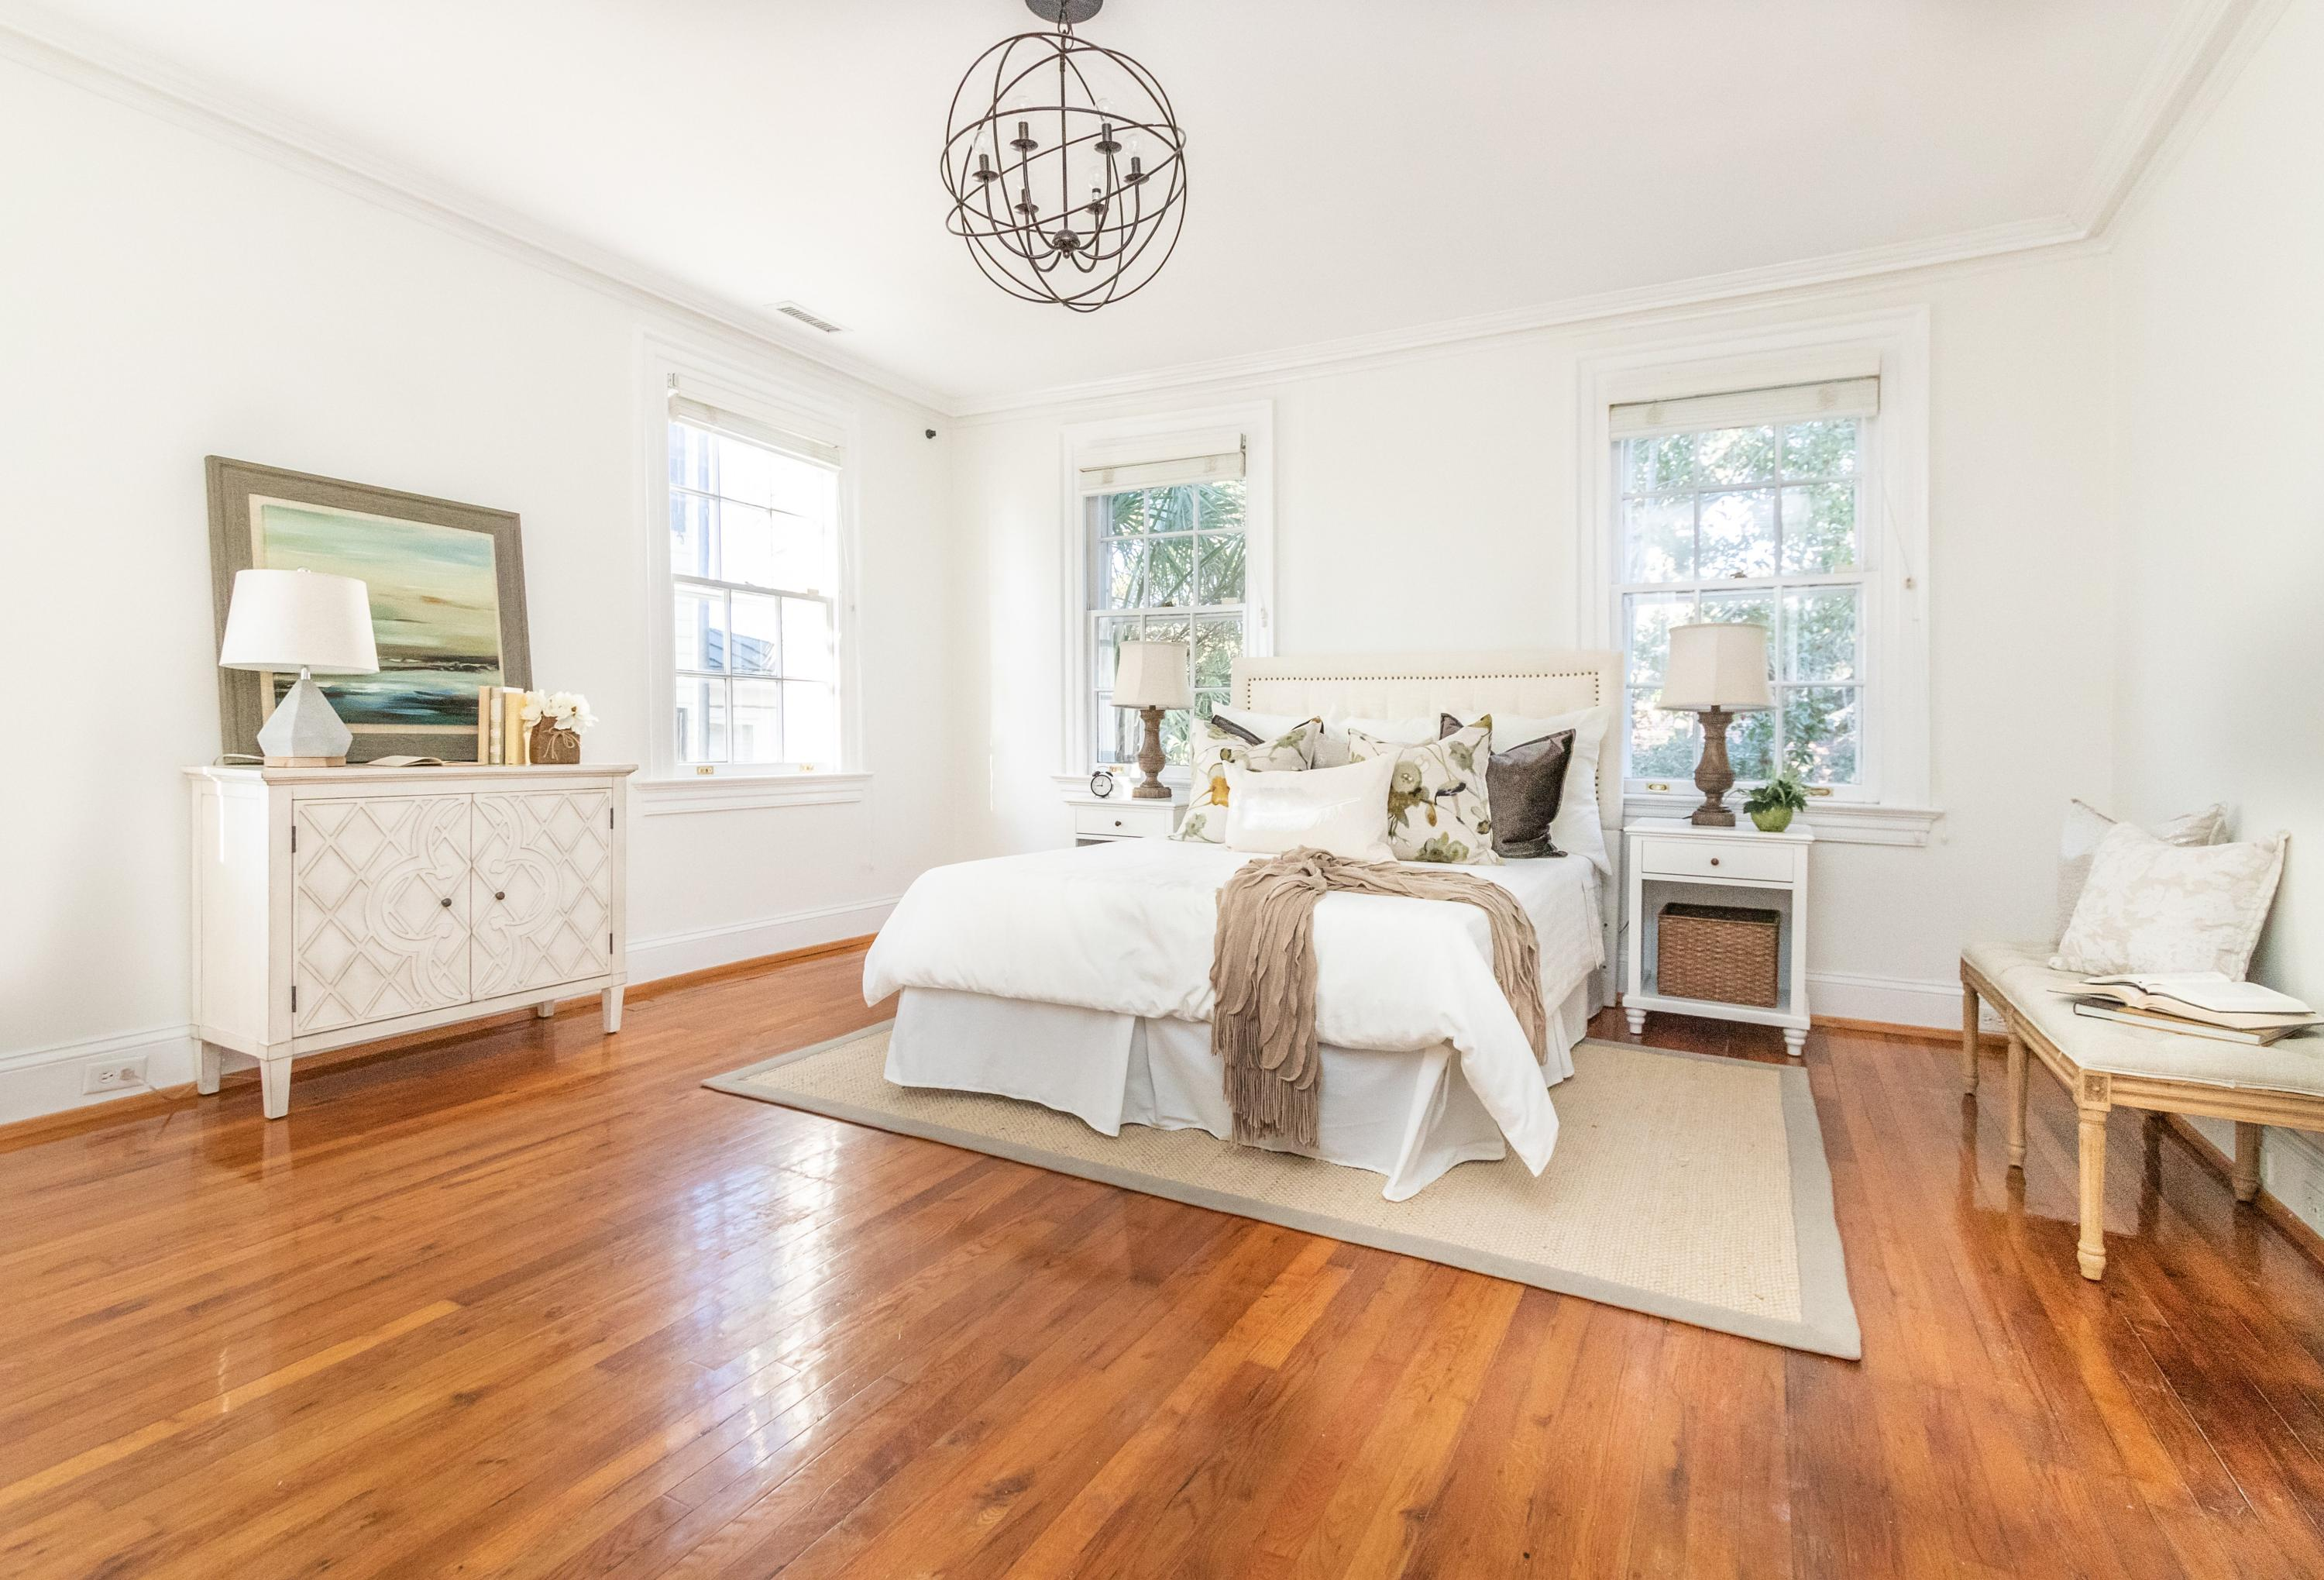 South of Broad Homes For Sale - 104 Murray, Charleston, SC - 9